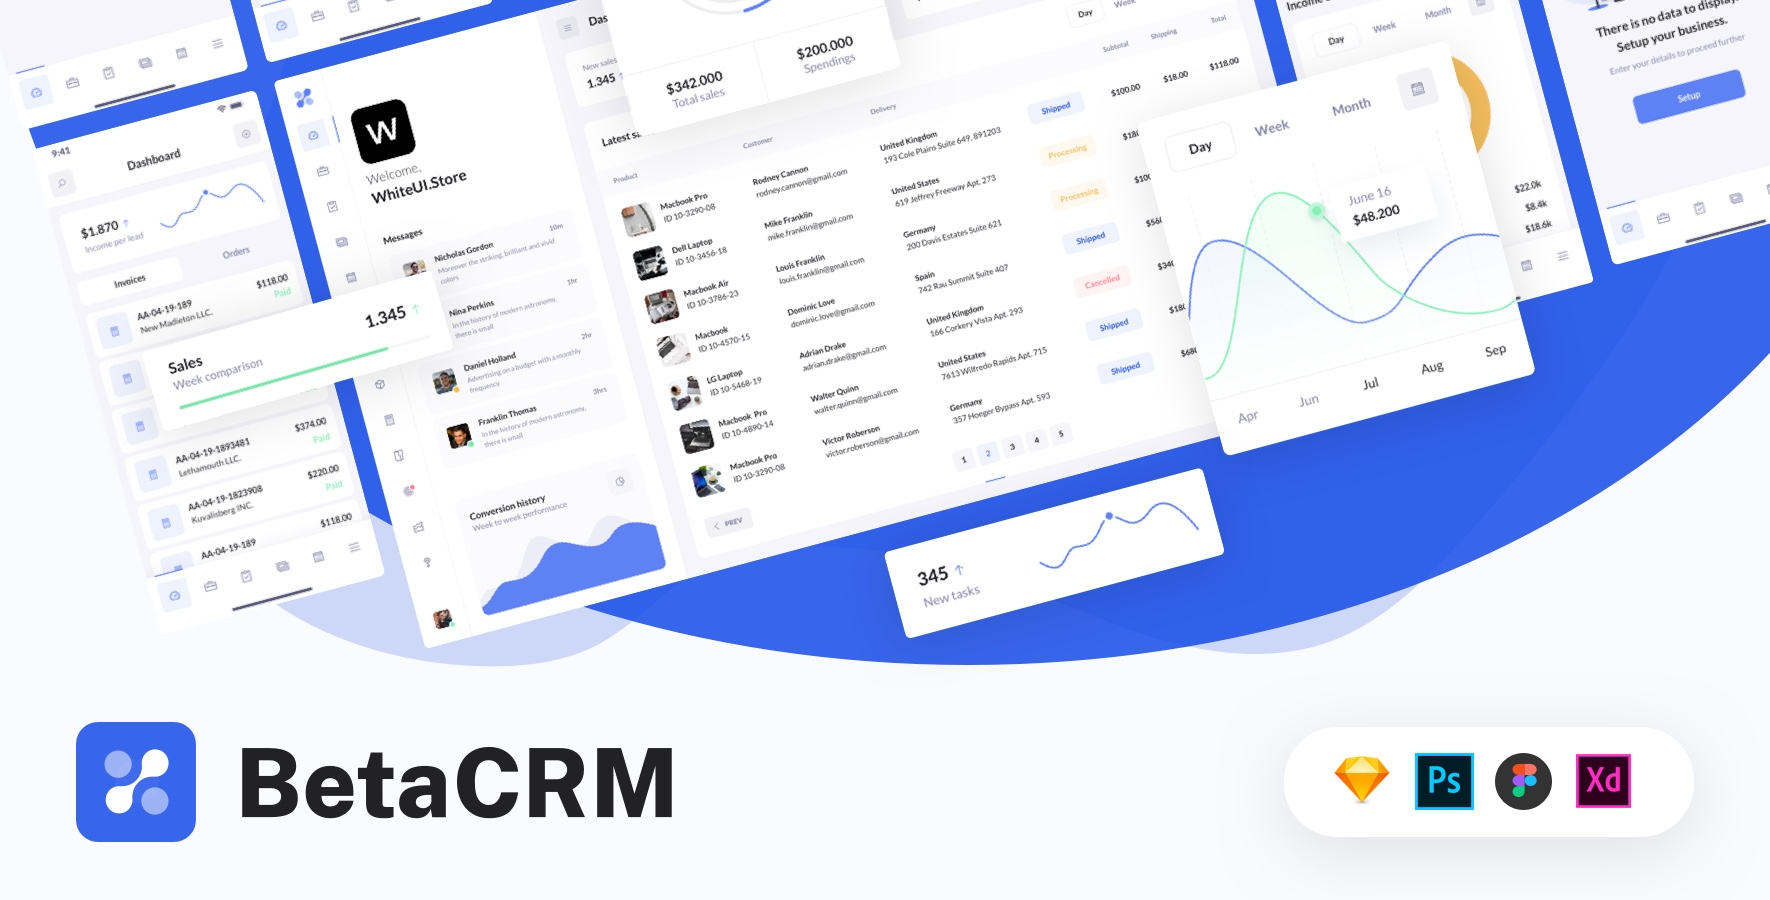 Beta crm ui kit